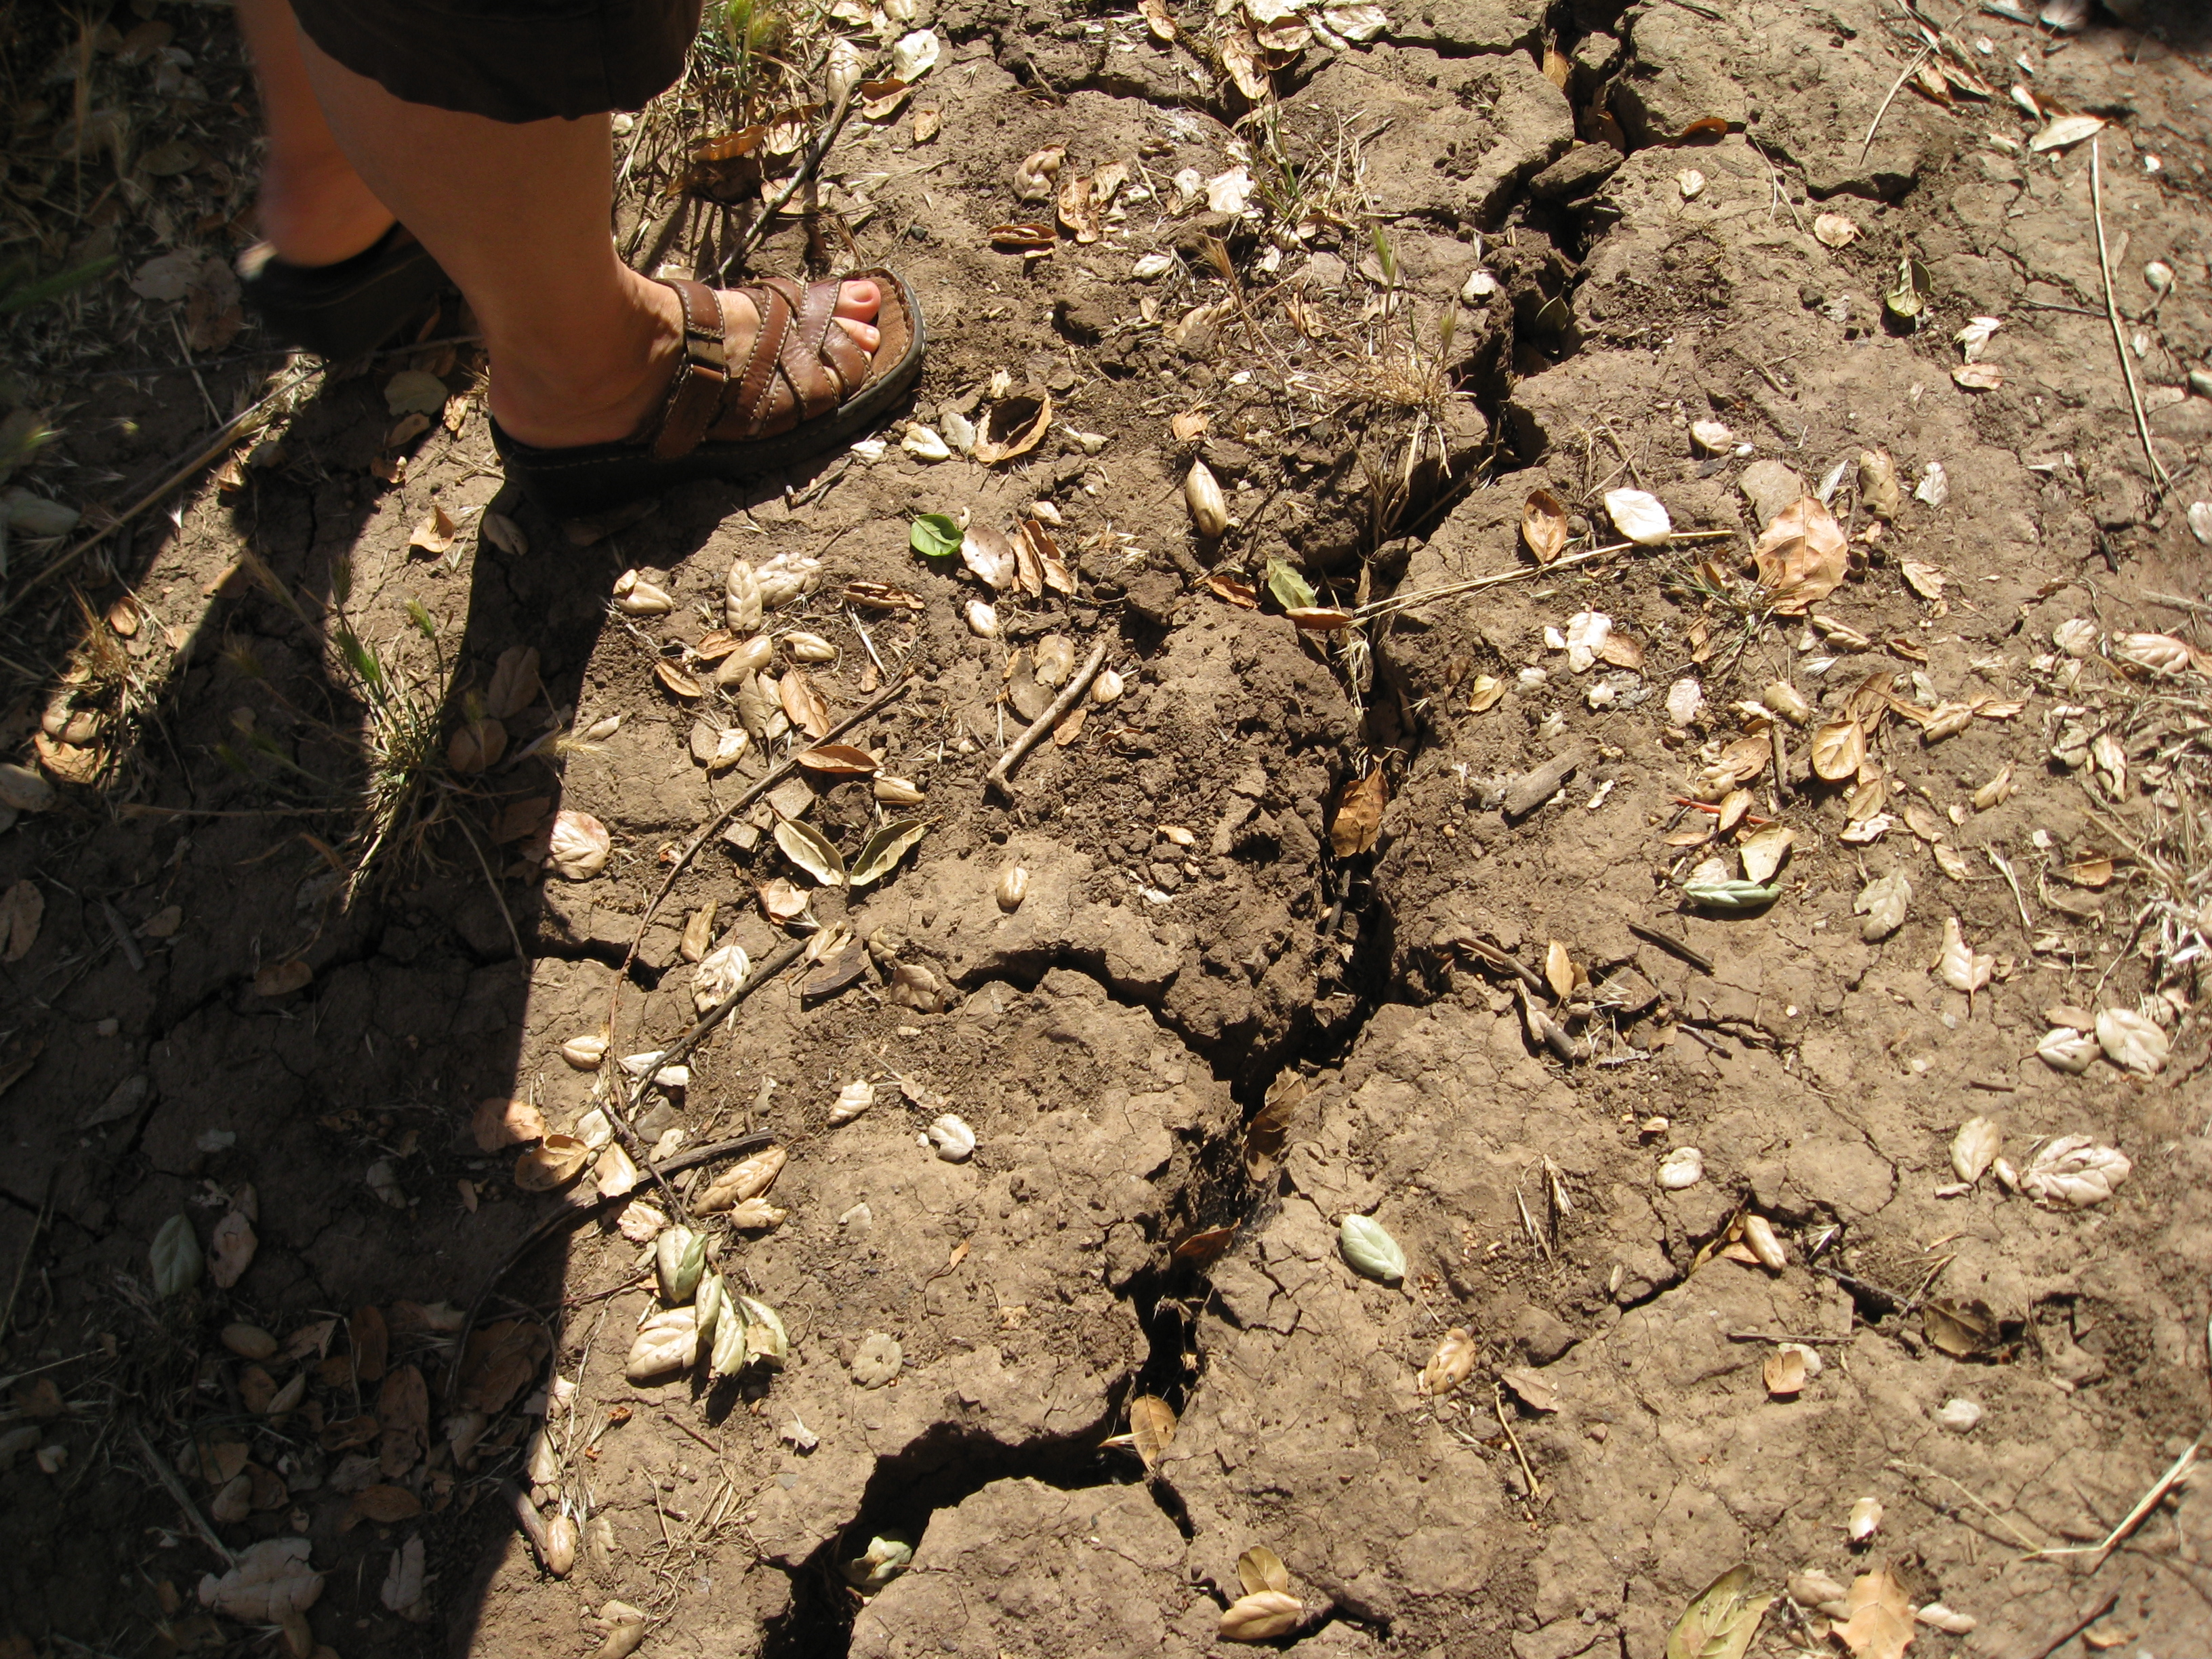 Dry, compacted soil in dire need of cover.